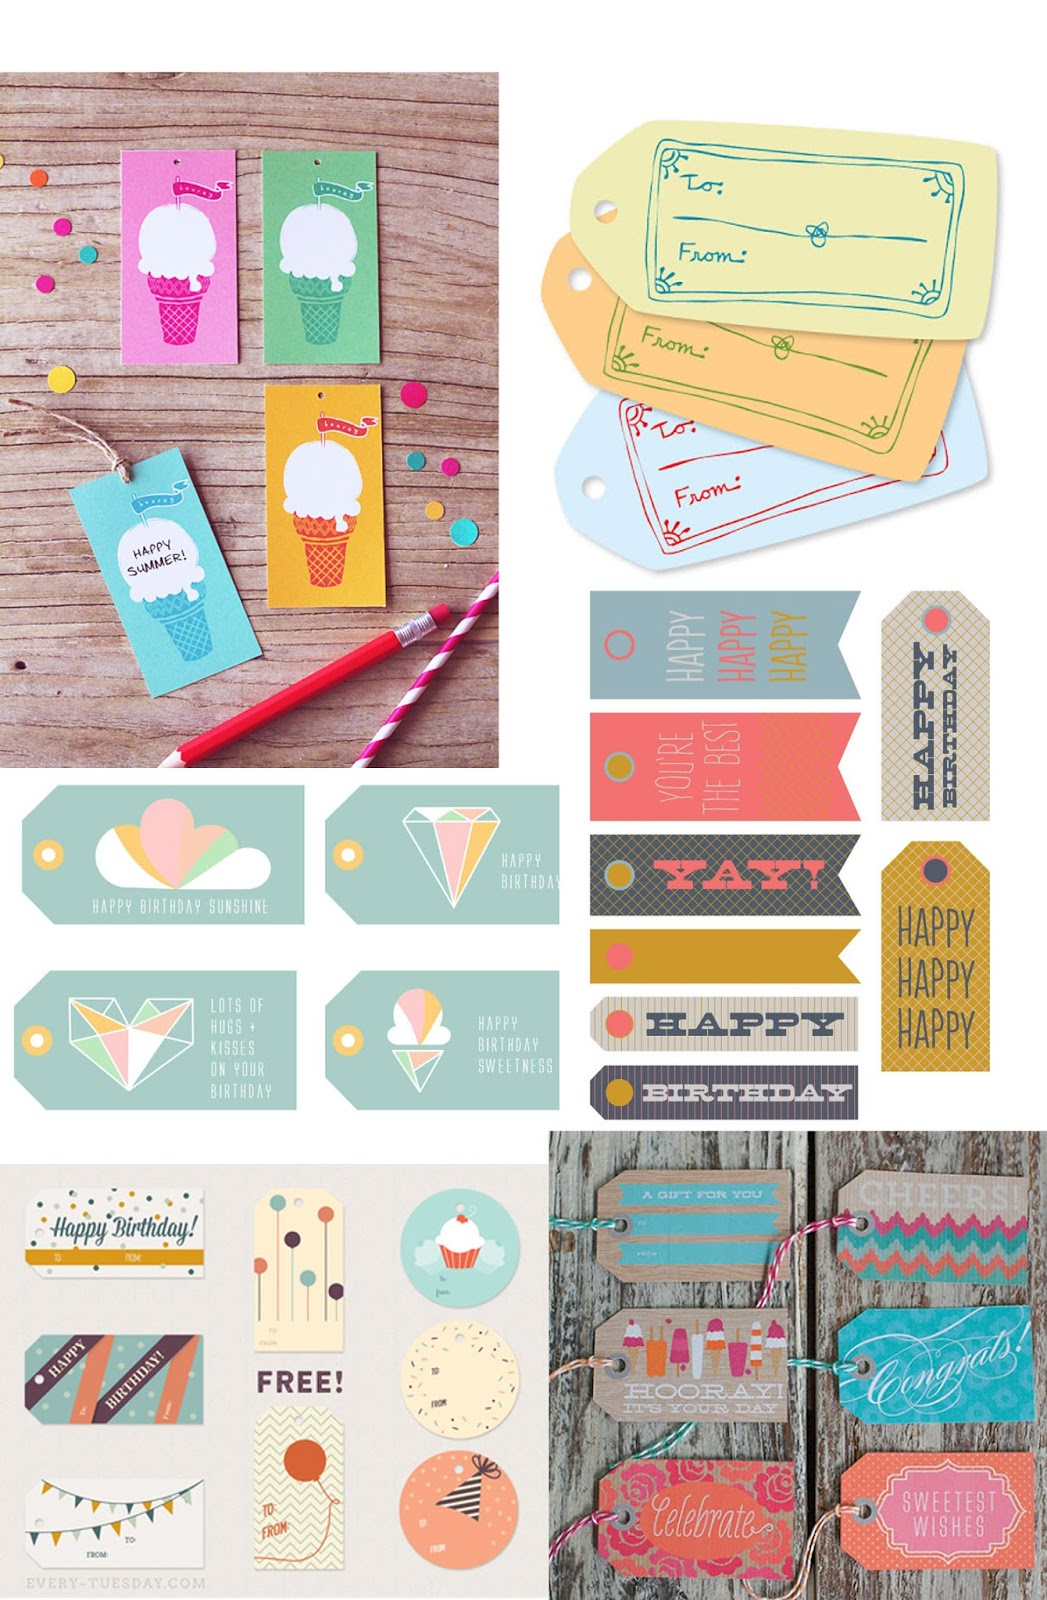 Tell free printable birthday tags tell love and party free free free i love free i love gift tags like these not only because they are so dang cute but if you have some old boring wrapping paper or box negle Choice Image